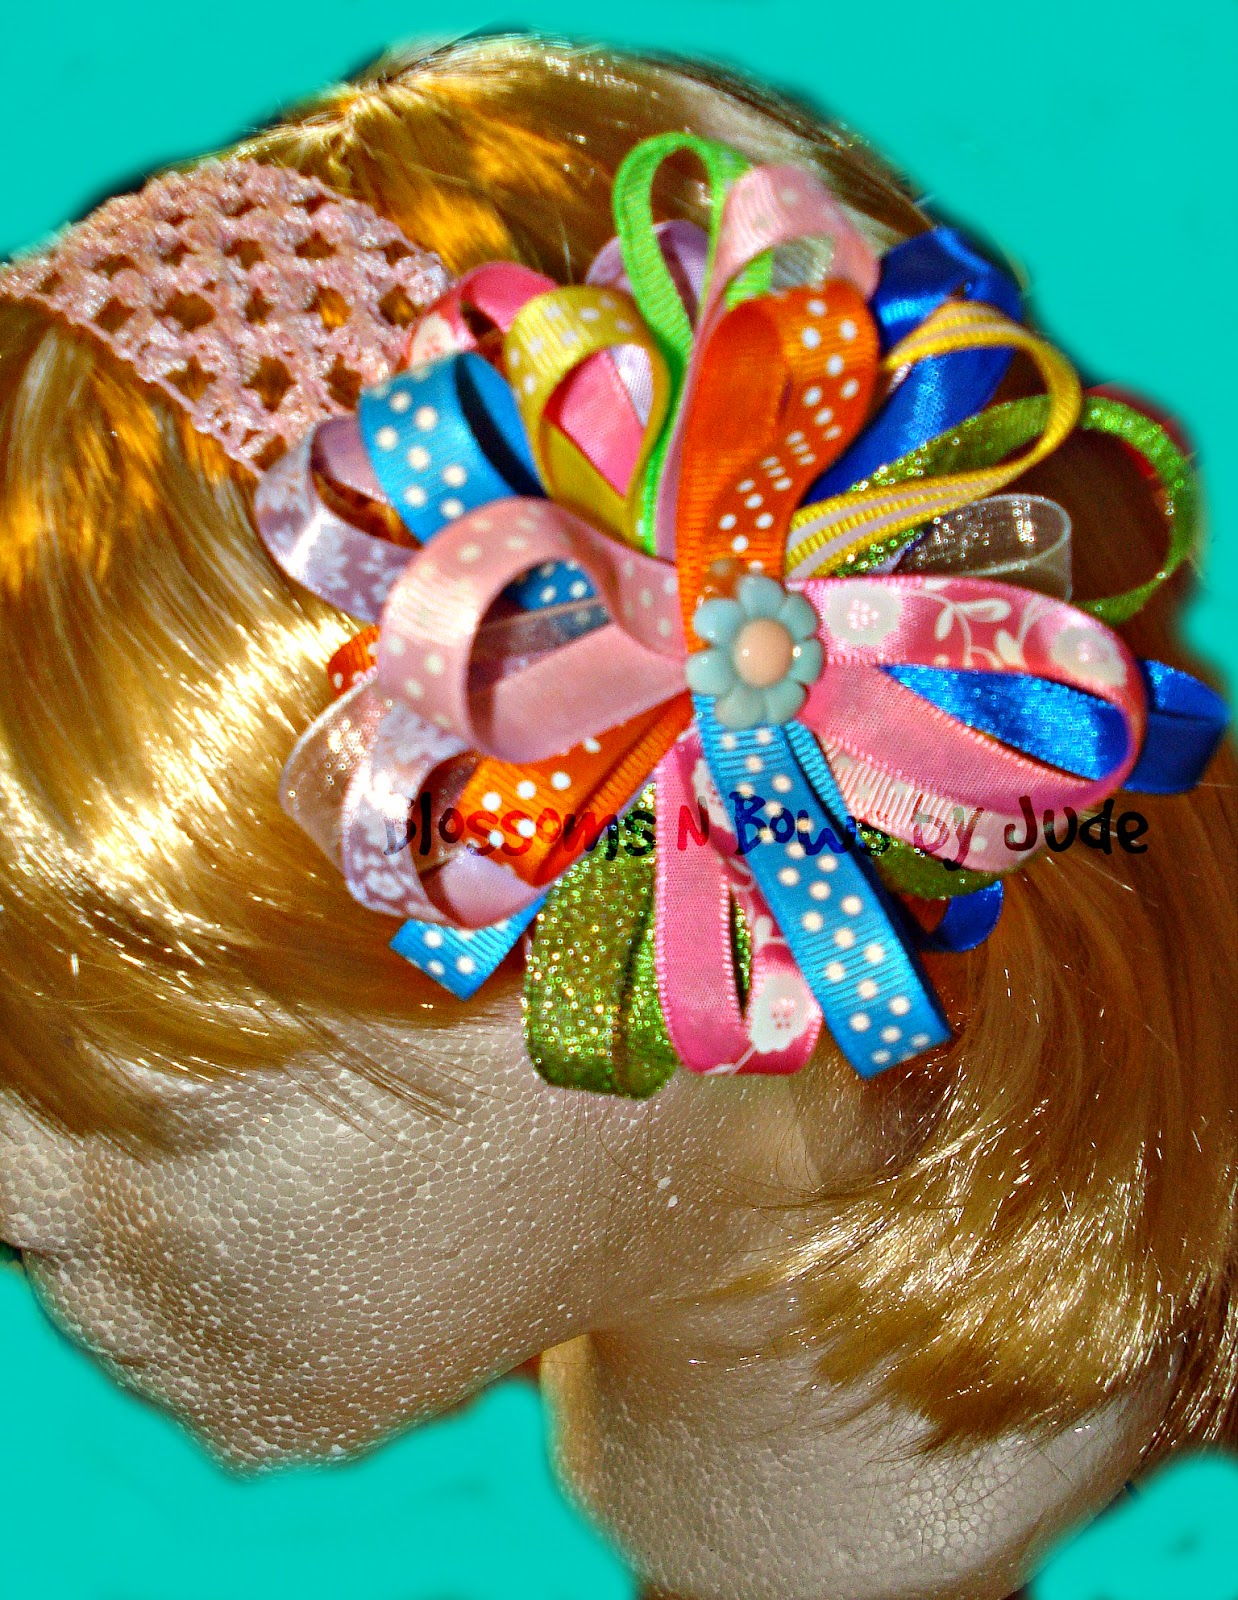 http://www.ebay.com/itm/Easter-Spring-bright-and-colorful-hair-bow-u-choose-headband-color-alligator-c-/151274756140?pt=US_Girls_Accessories&hash=item2338ad982c